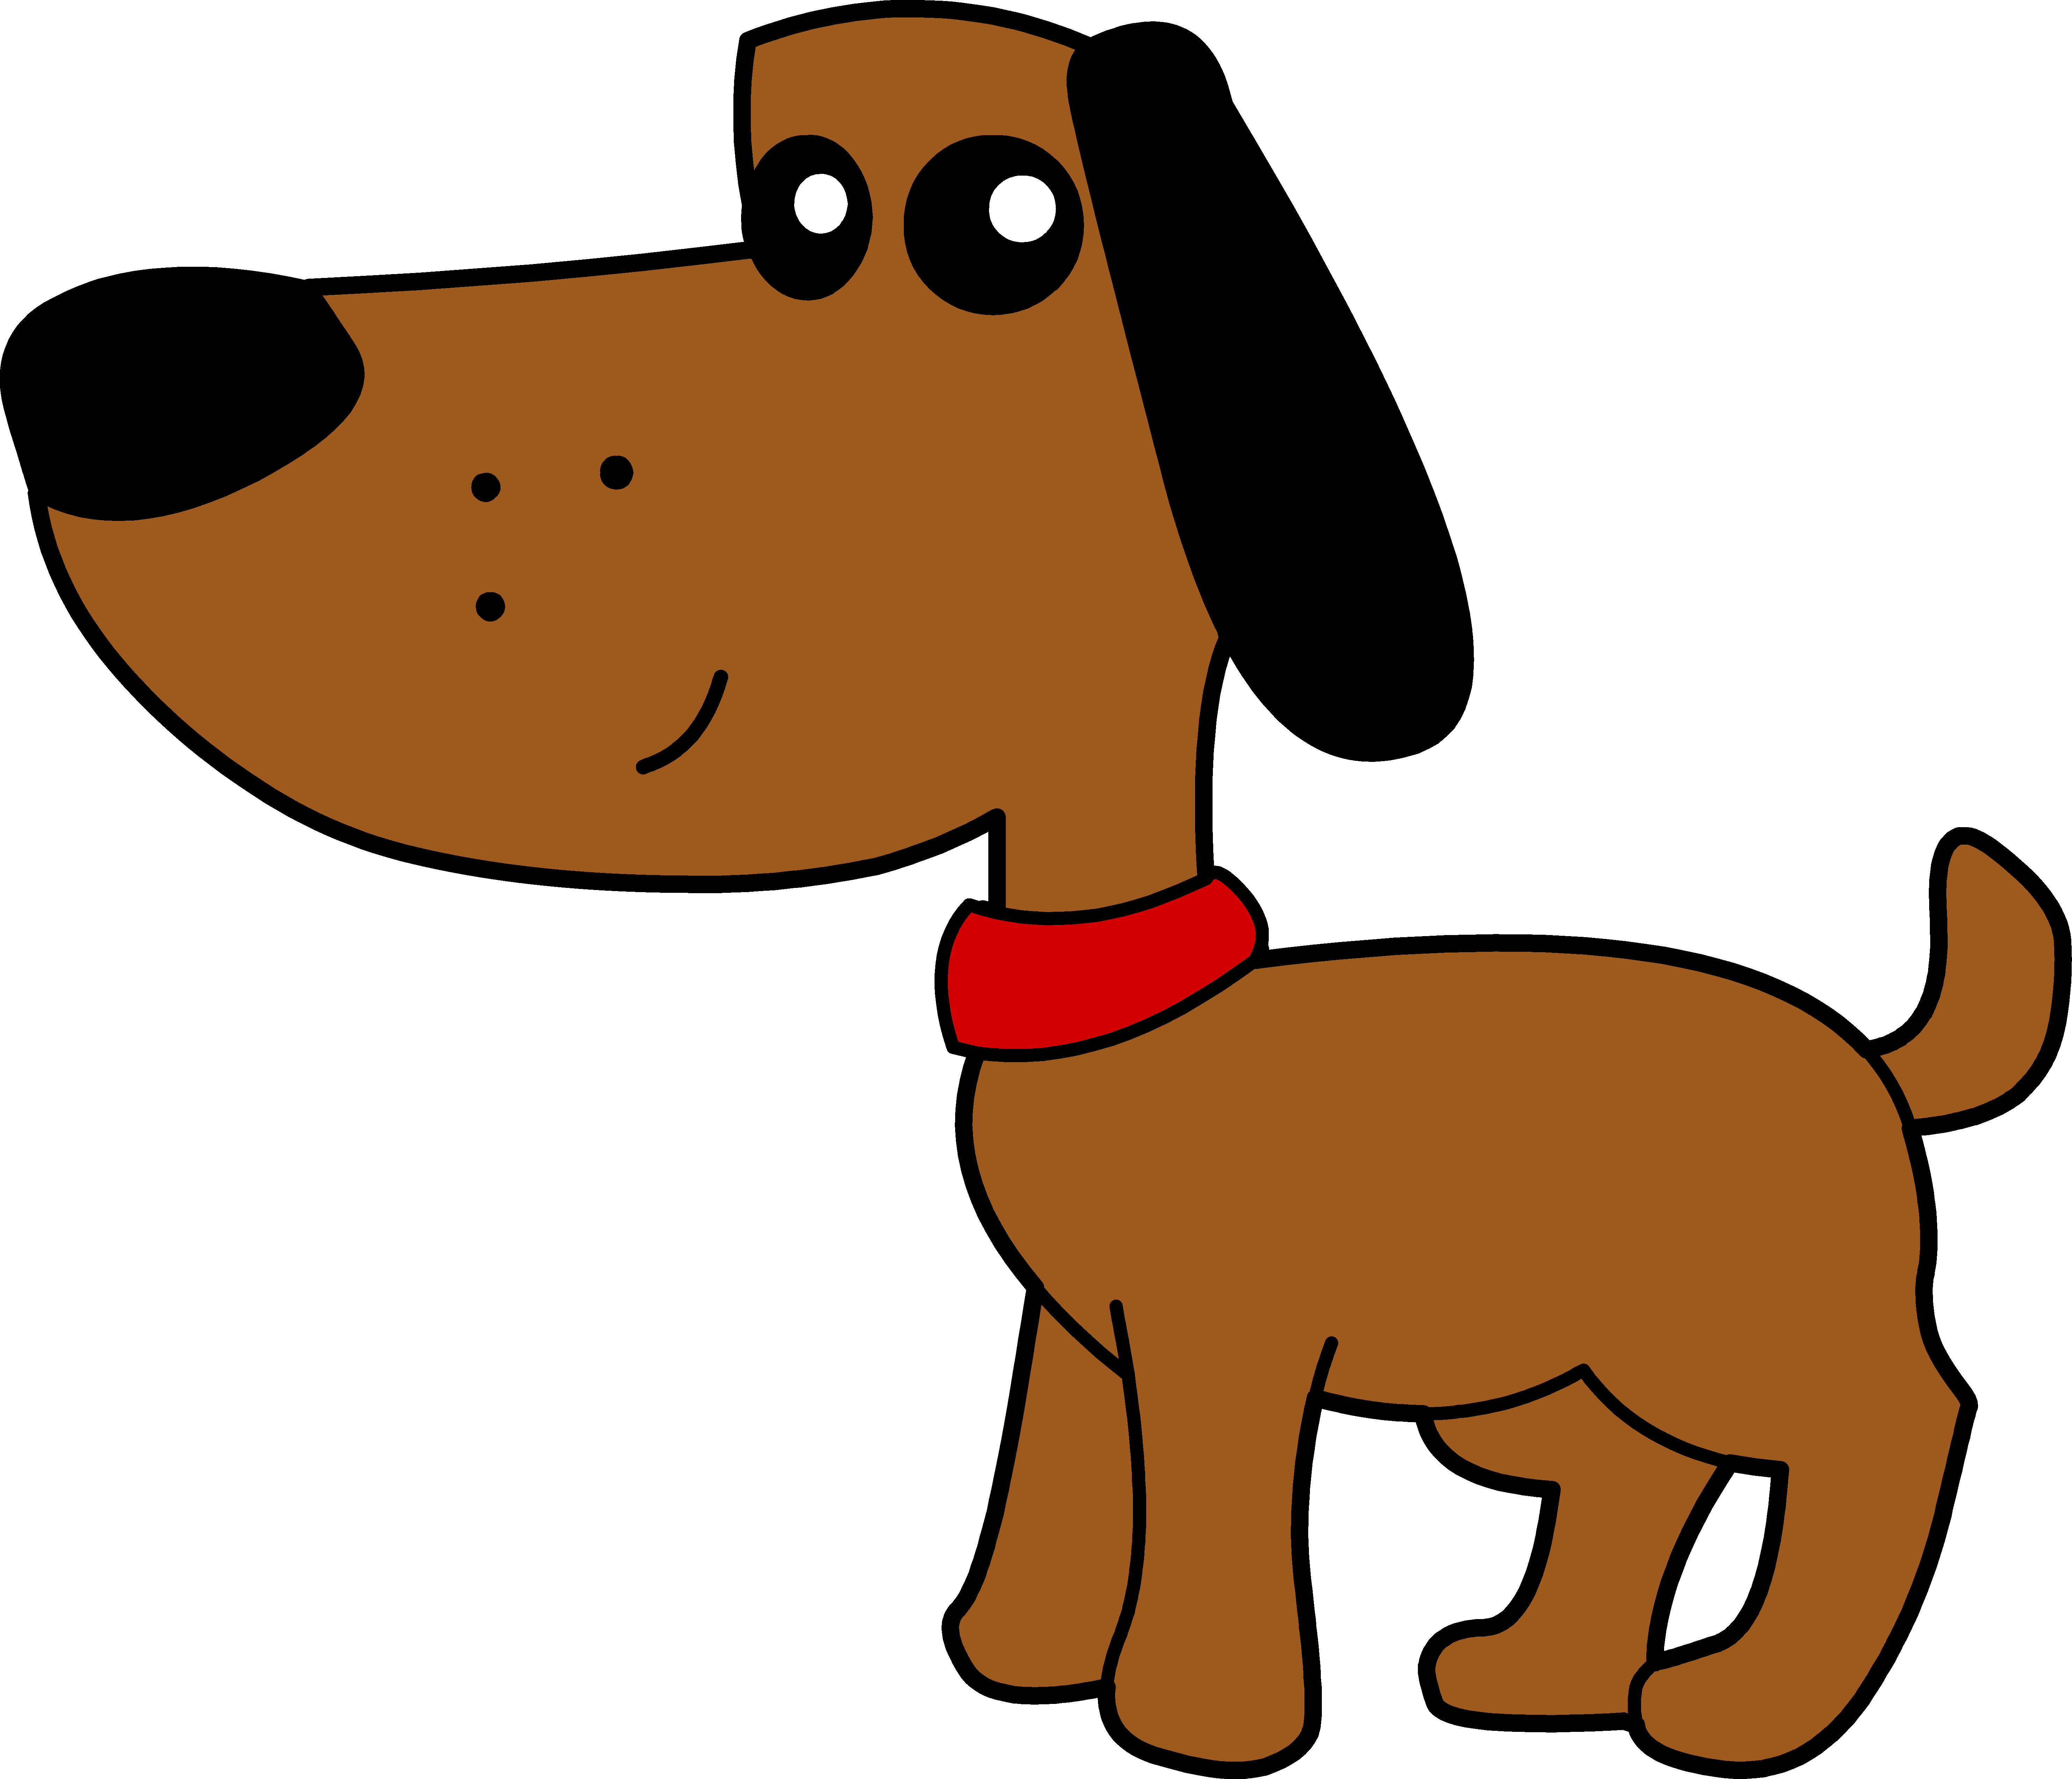 Free Free Dog Images, Download Free Clip Art, Free Clip Art.